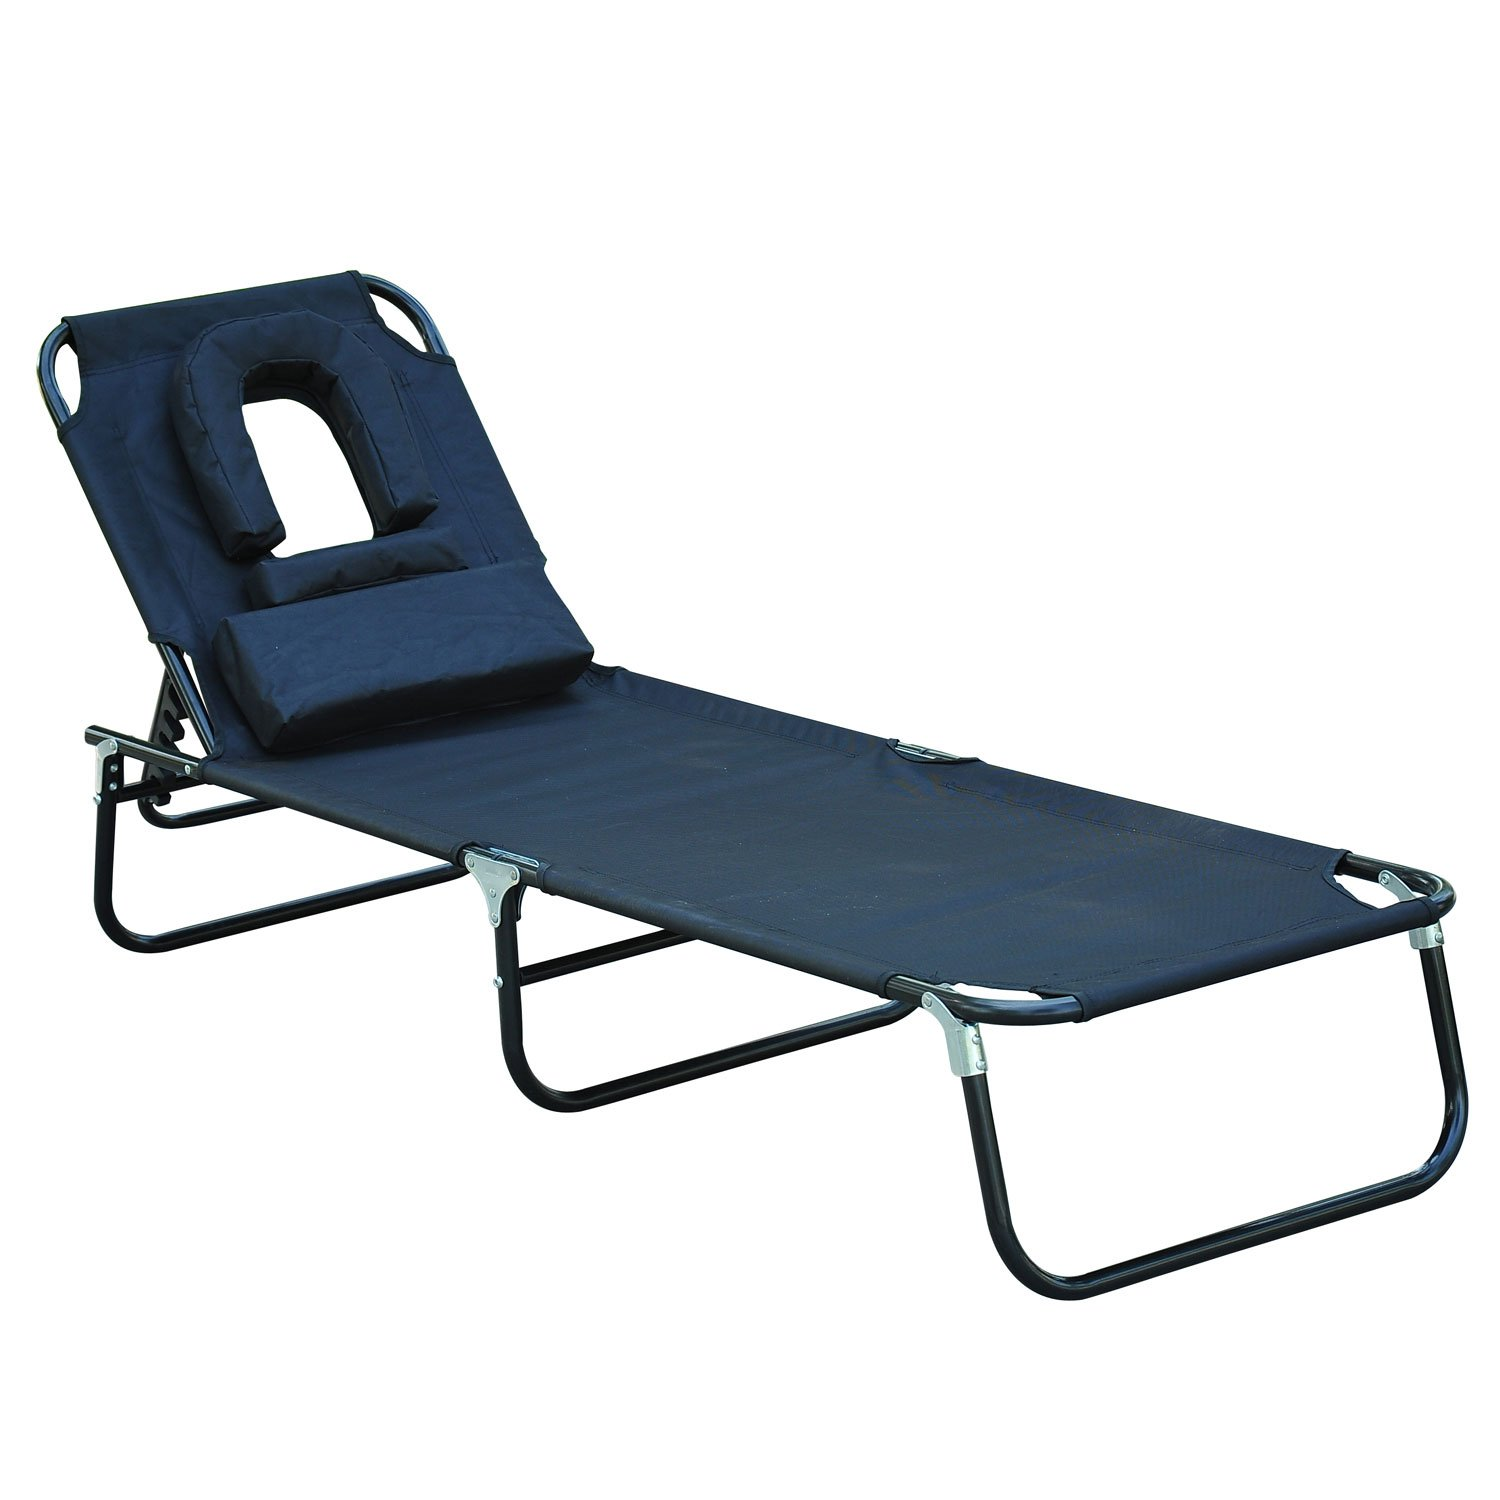 OUTSUNNY SUN BED CHAIRS GARDEN LOUNGER RECLINING FOLDING RELAXER